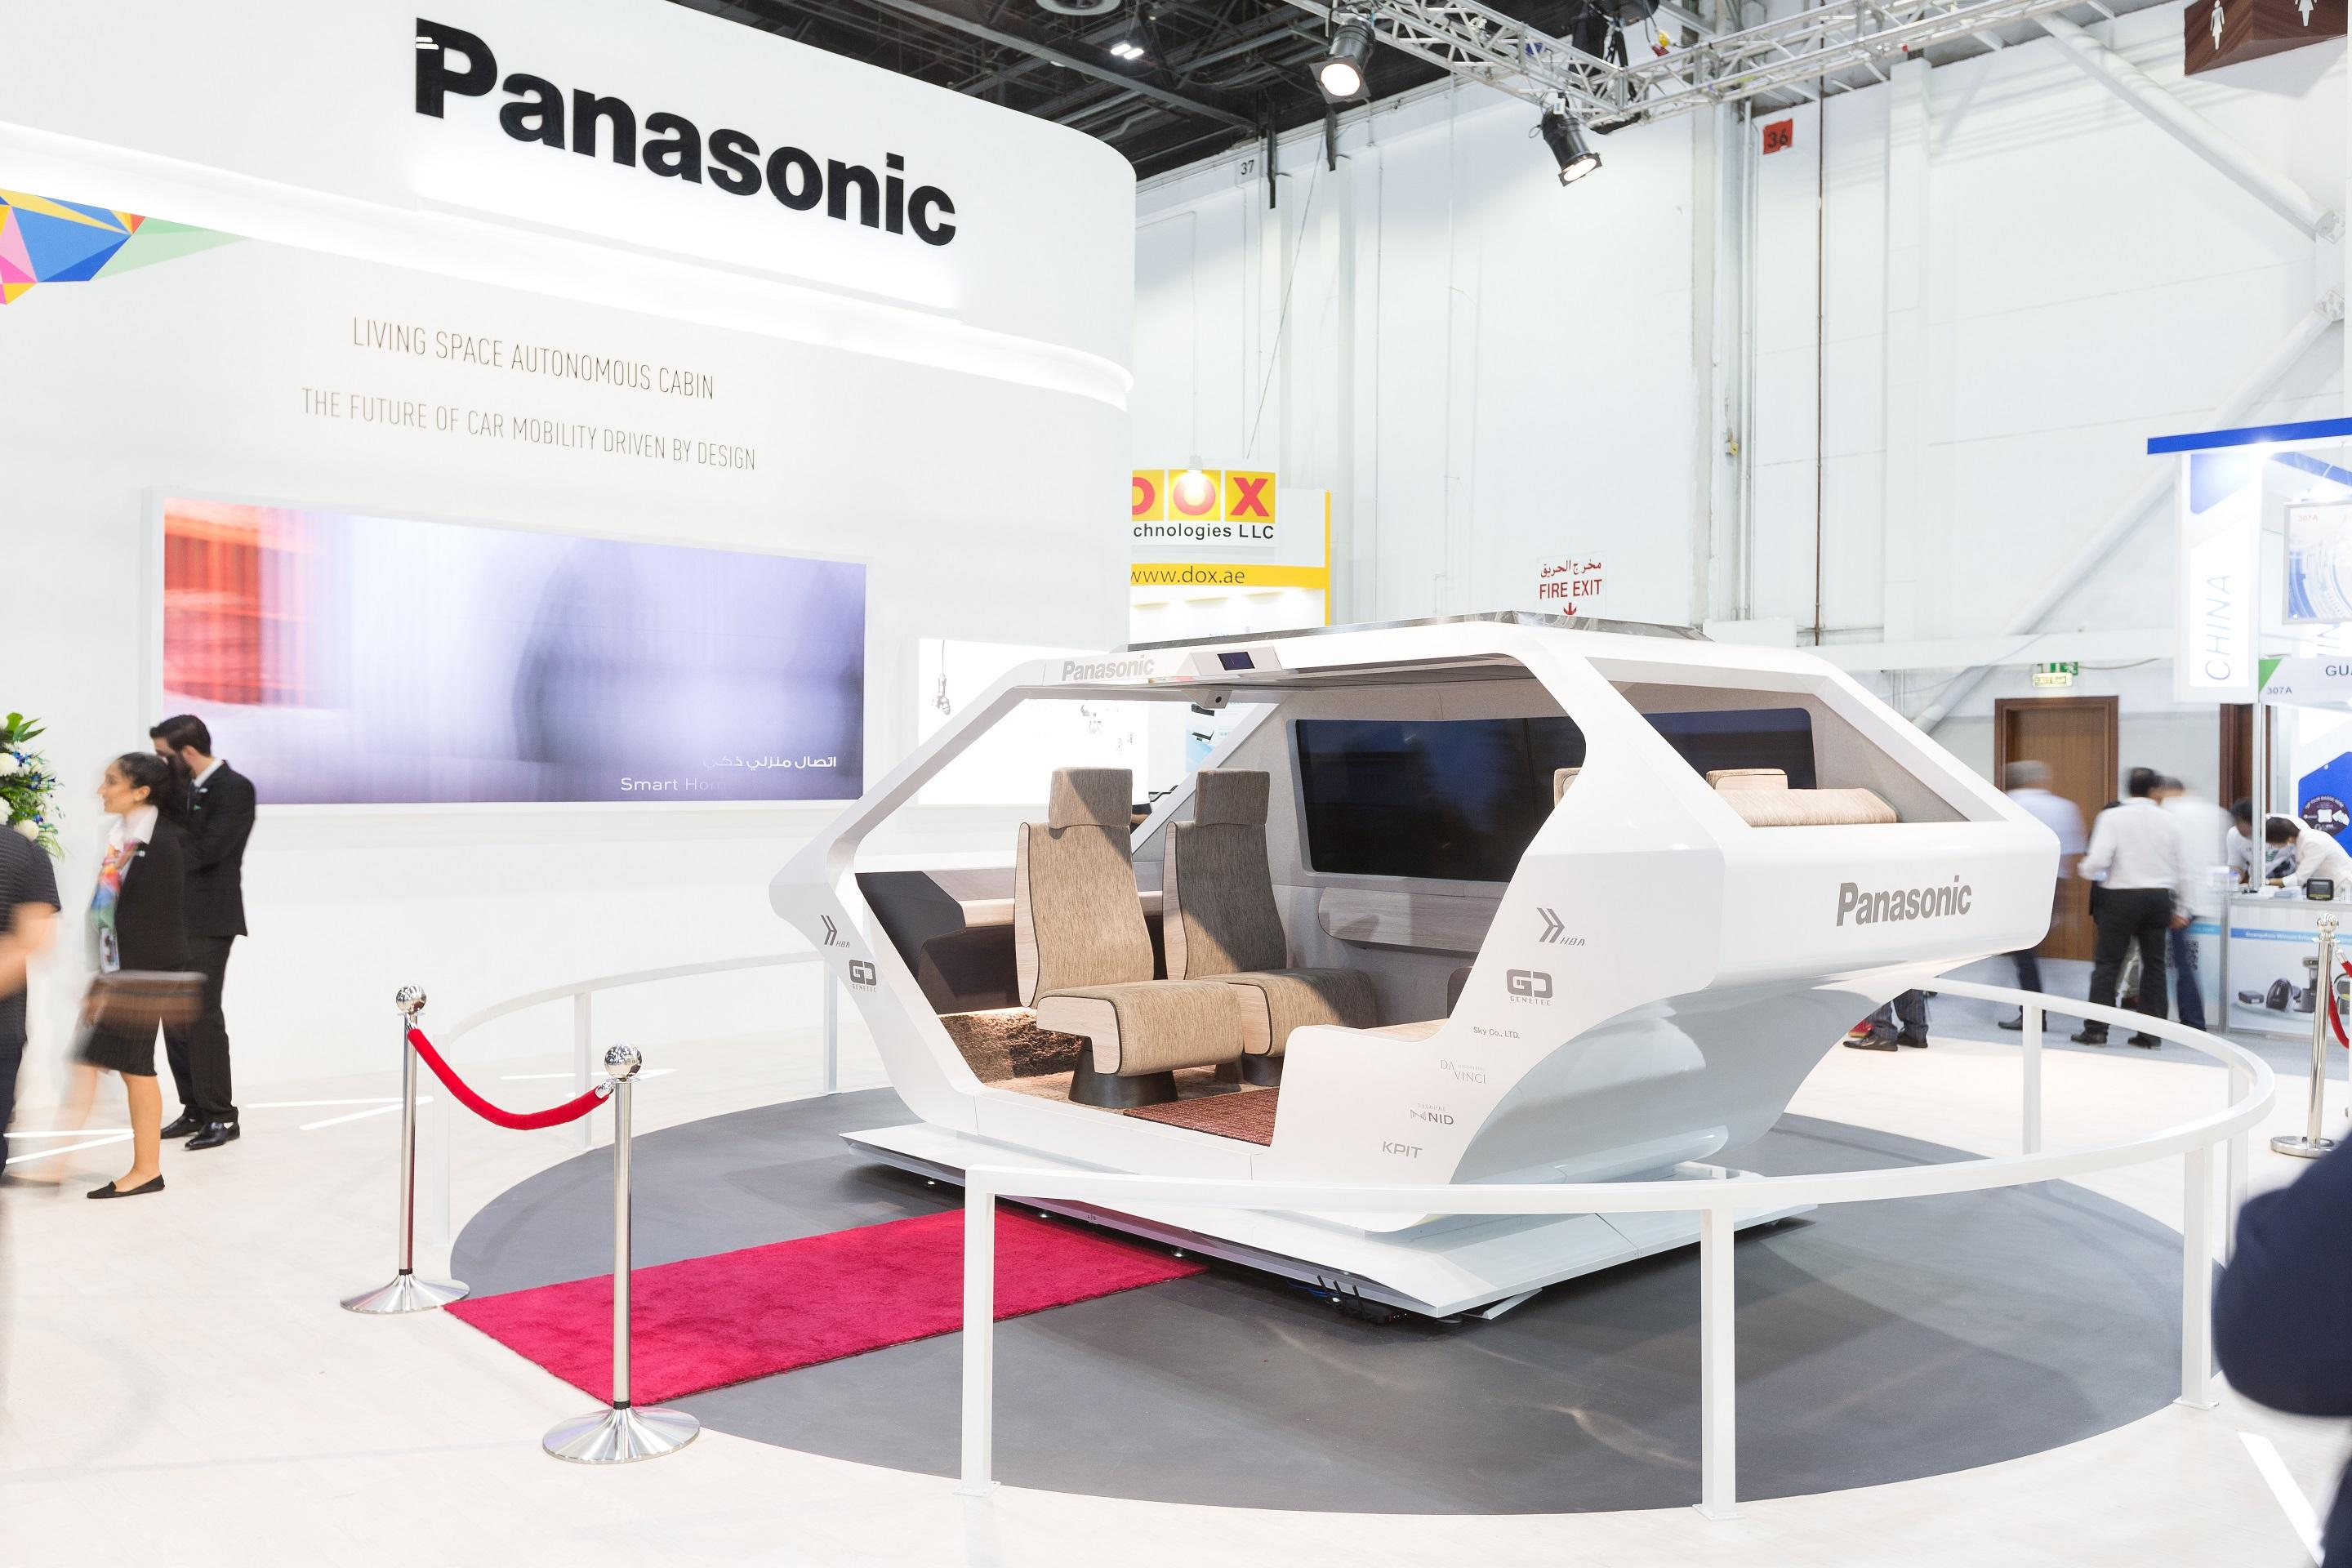 photo: Panasonic's Autonomous Living Space Cabin at GITEX 2018